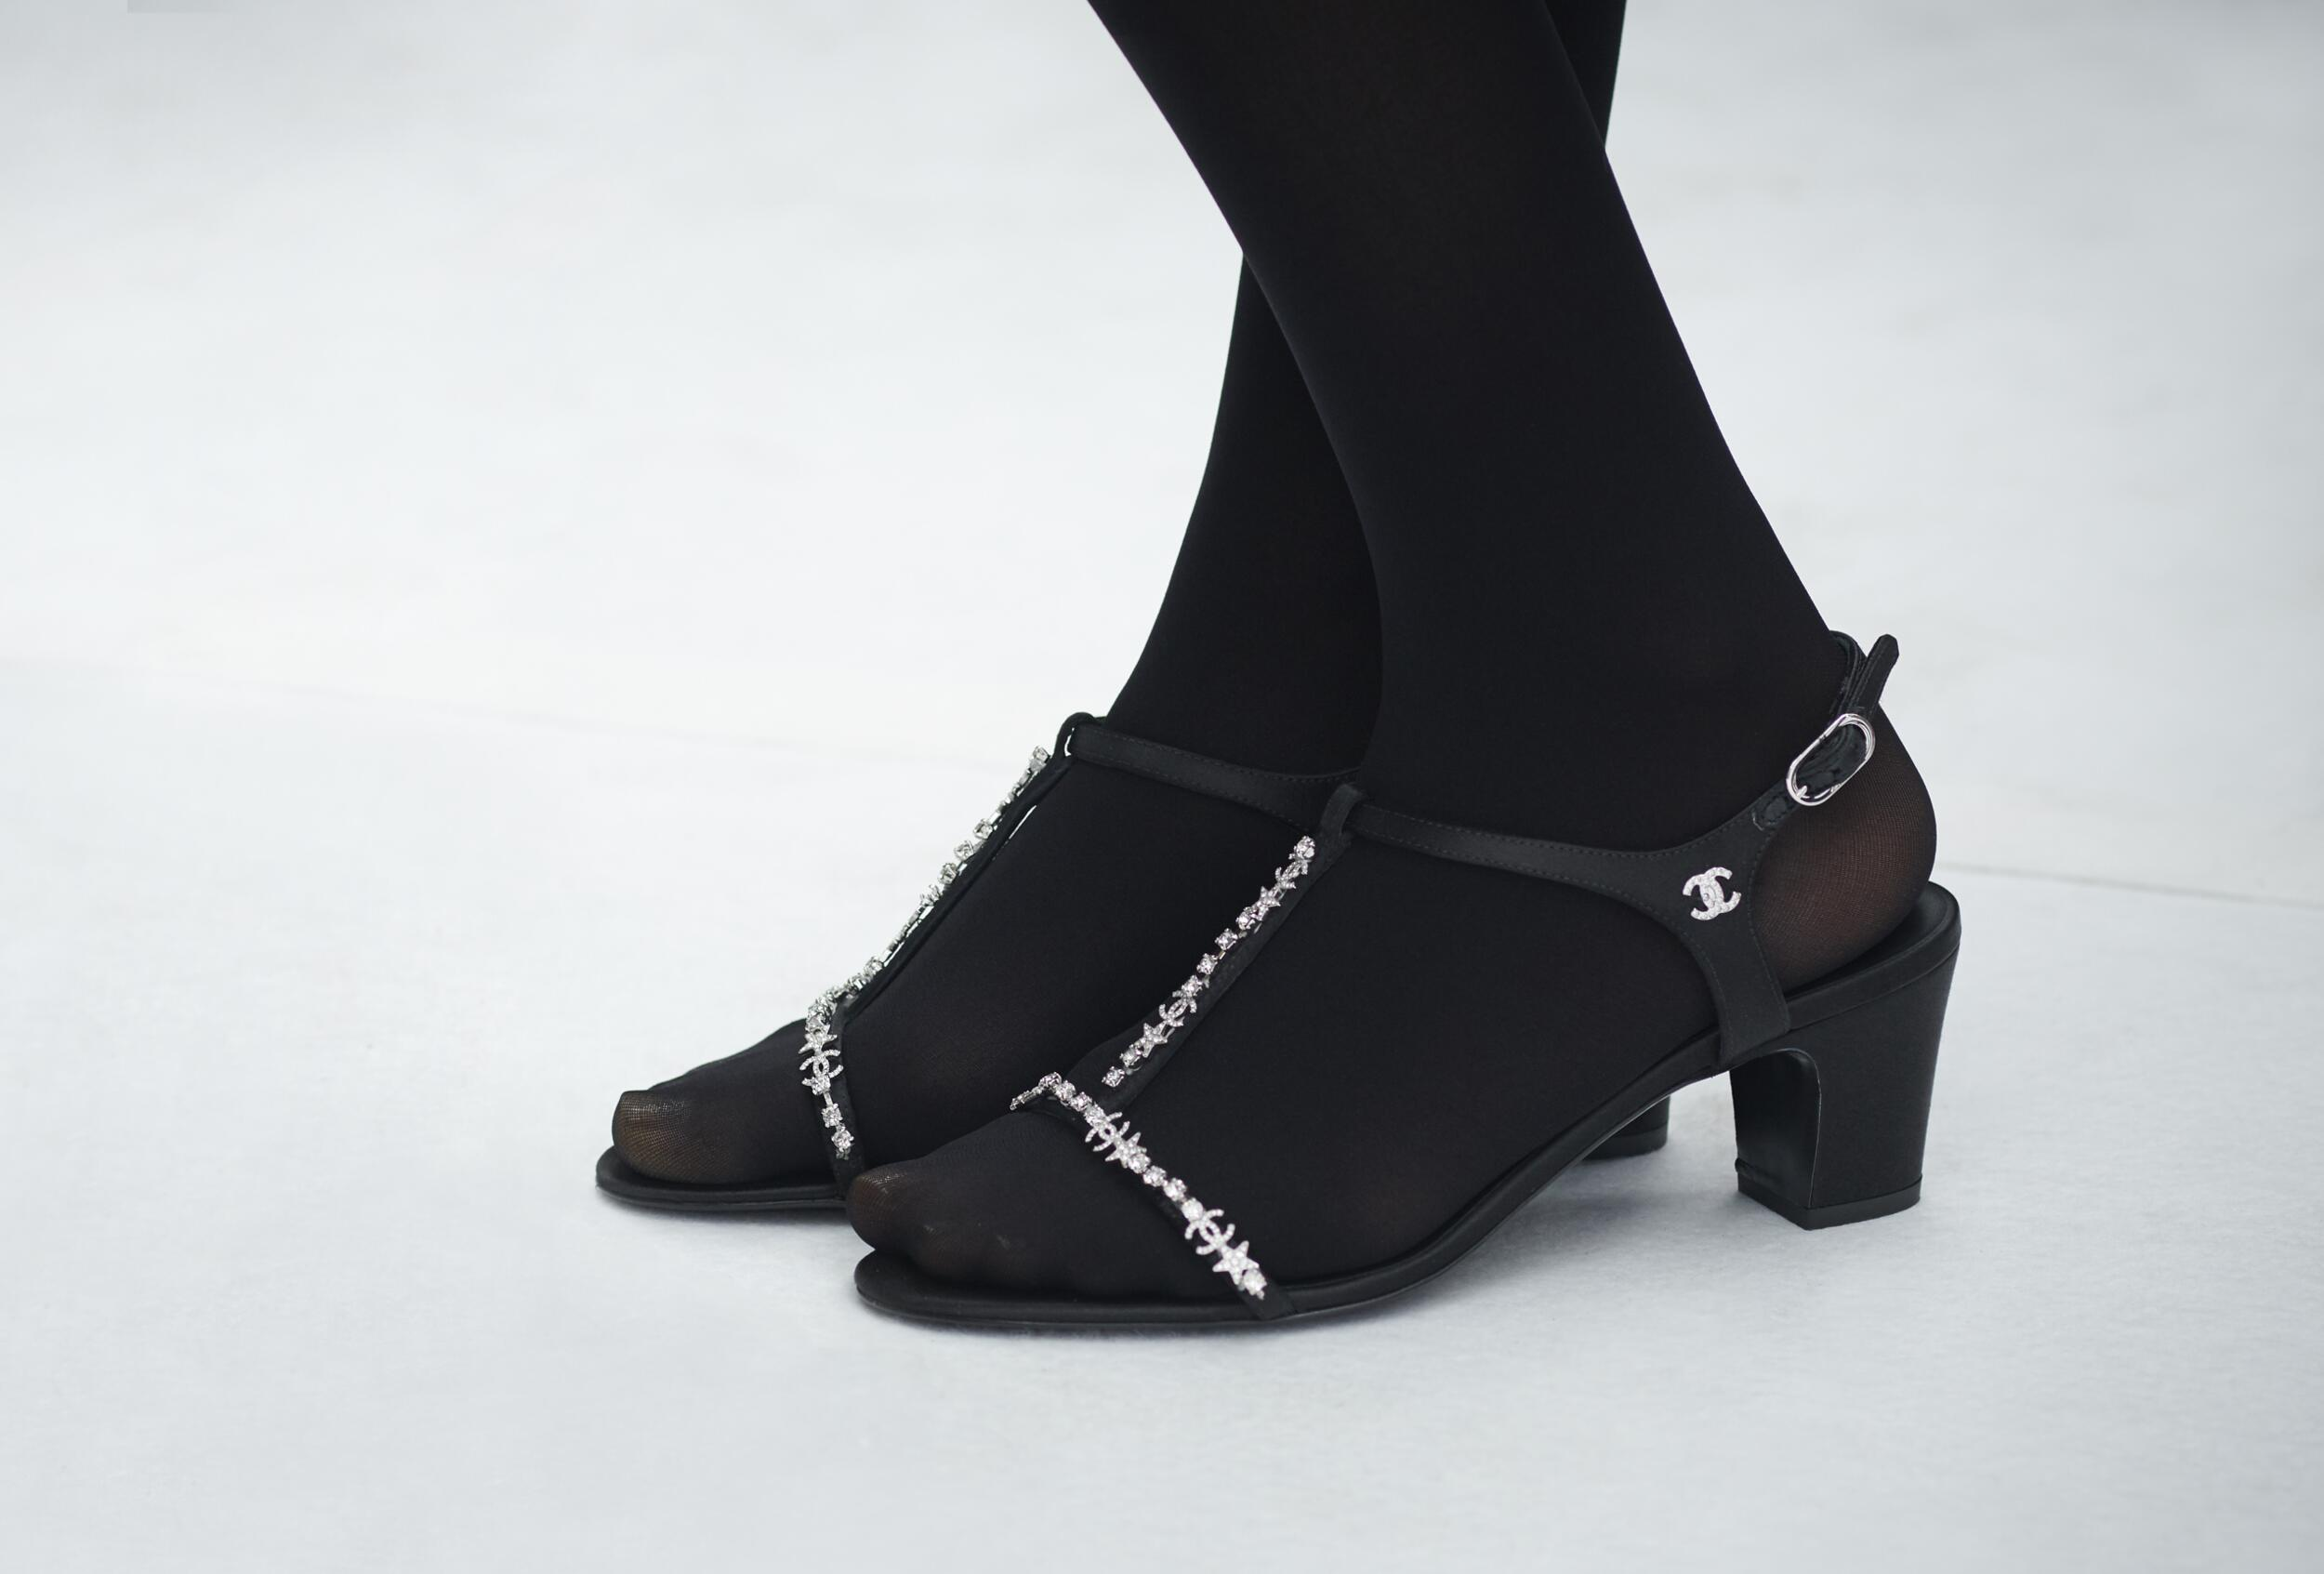 SS 2020 Shoes Chanel